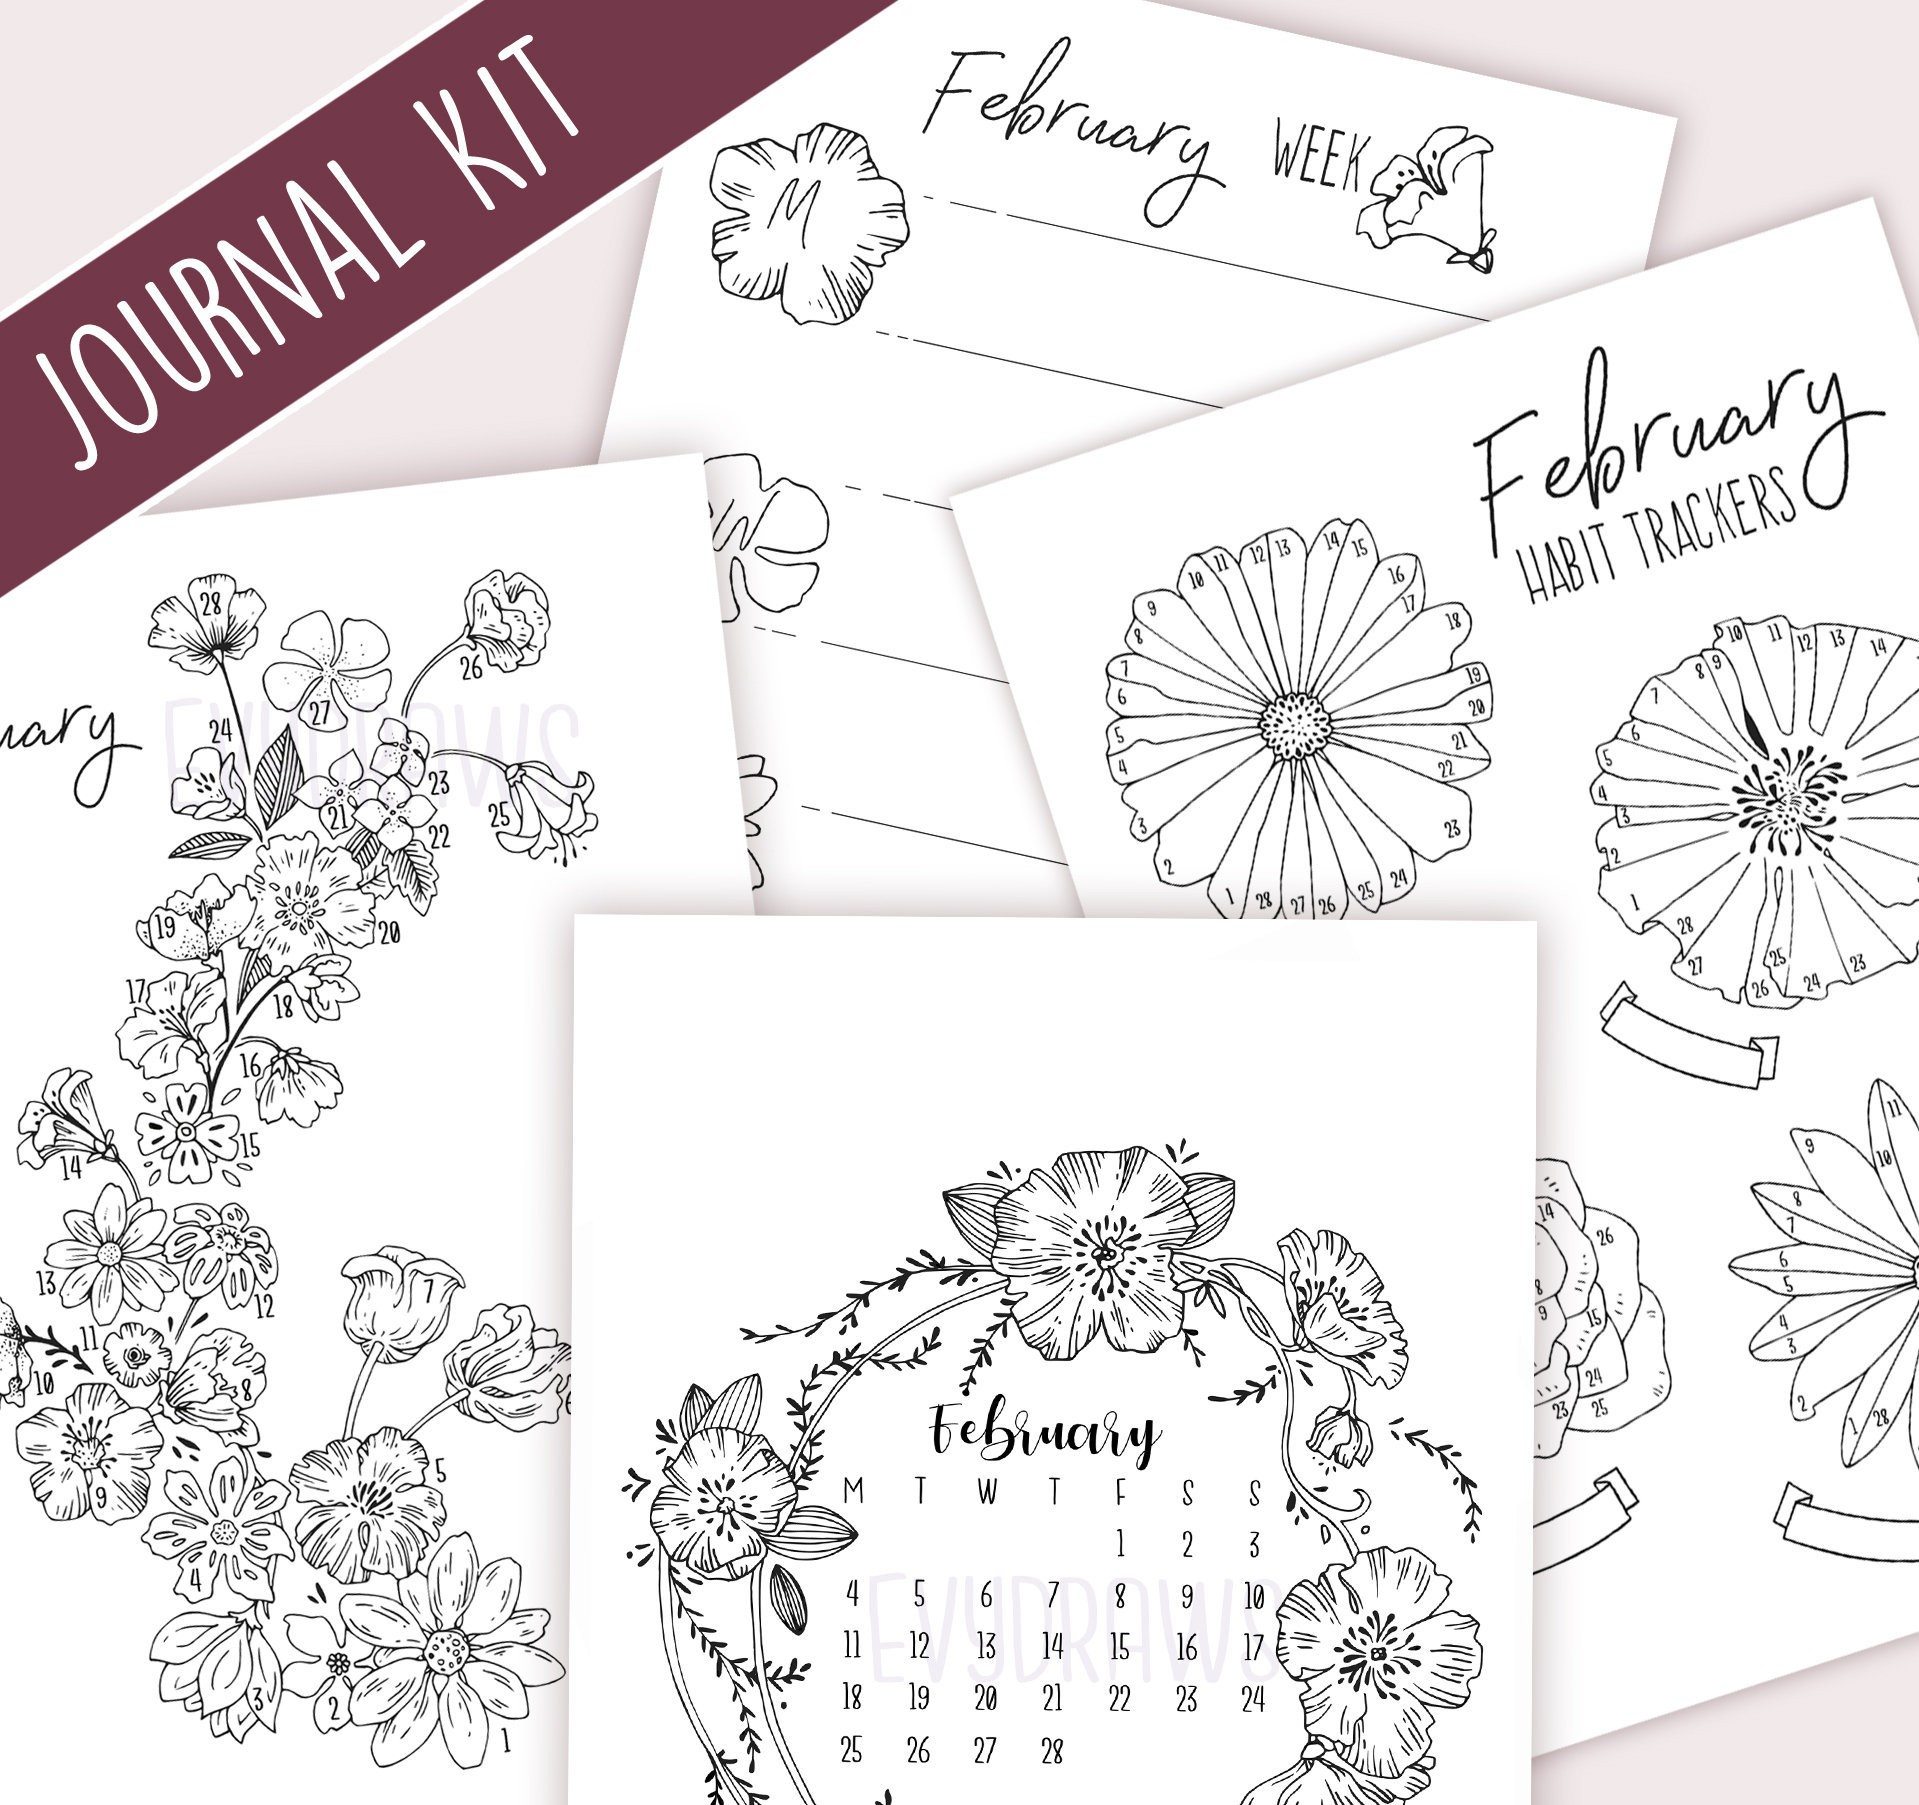 2019 March Calendar Sri Lanka Más Recientes February 2019 Bullet Journal Kit Printable Monthly Bundle Of 2019 March Calendar Sri Lanka Más Caliente Phd Chamber